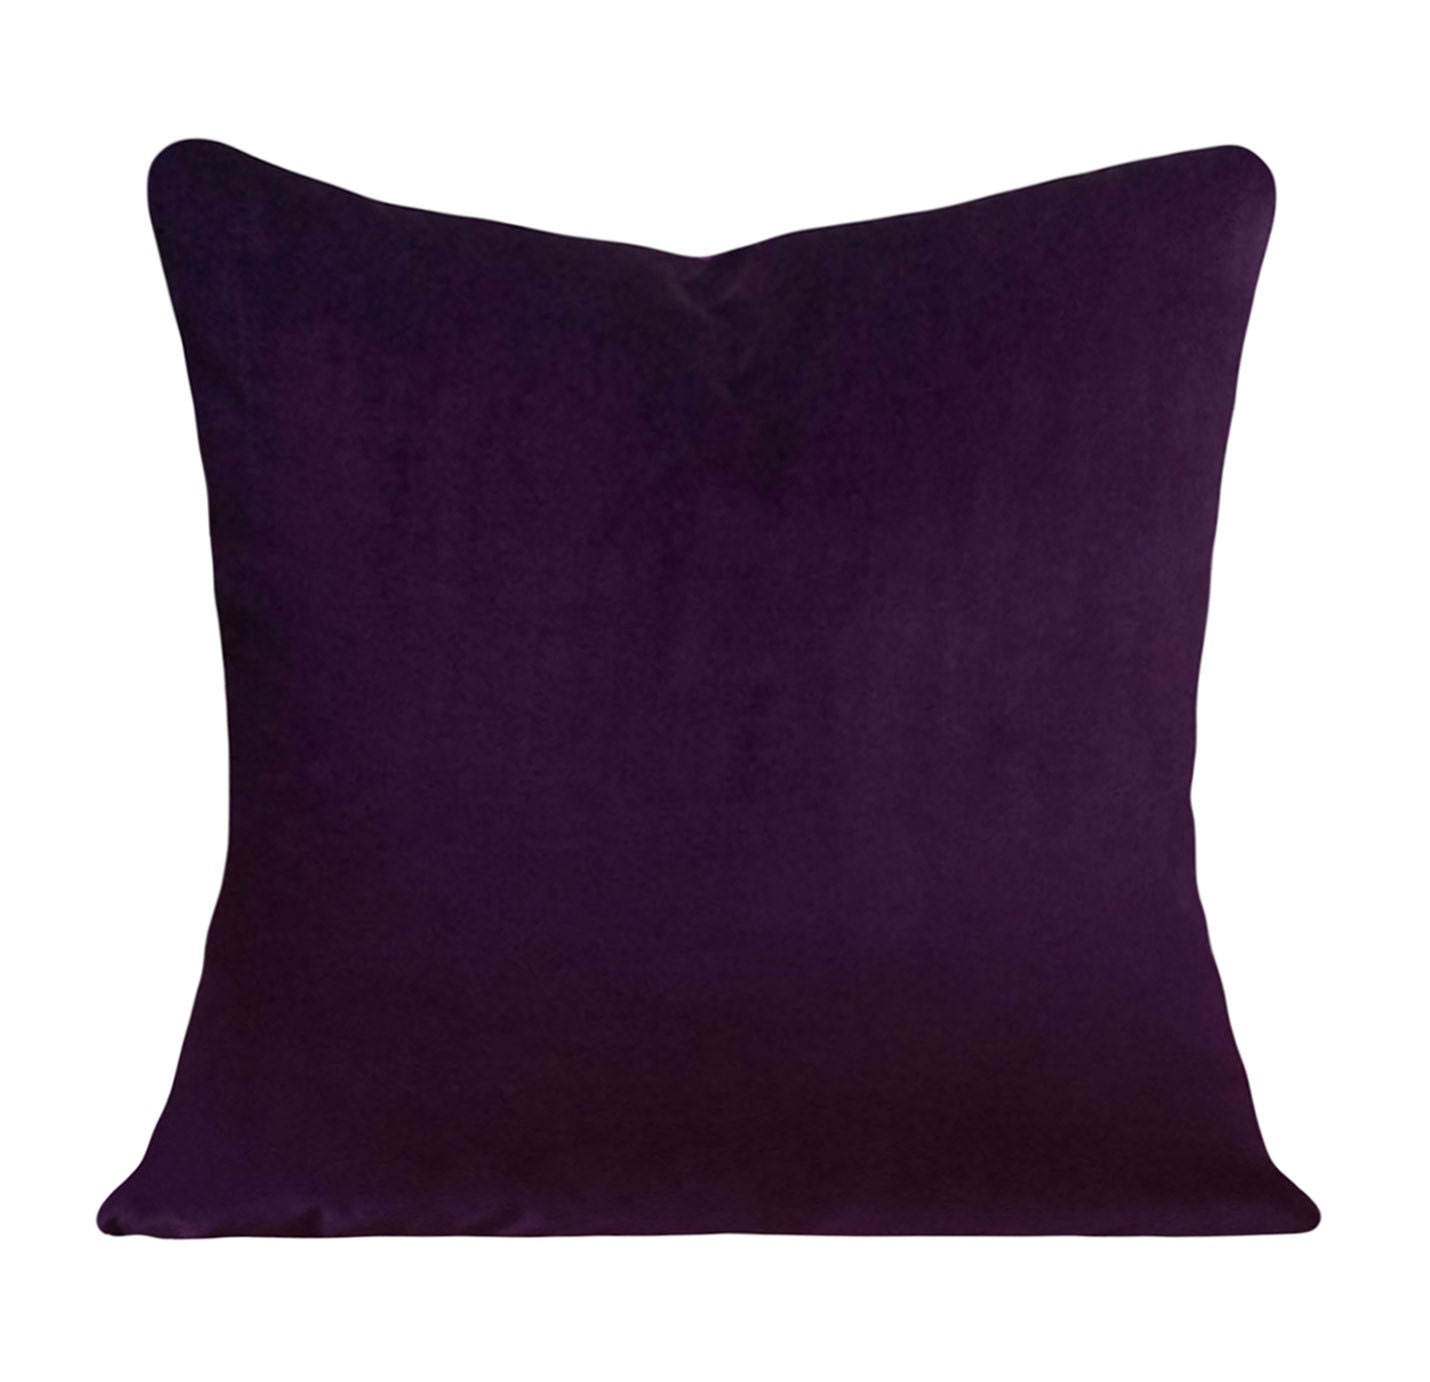 Velvet Decorative Pillow Covers : Purple Velvet Decorative Pillow Cover Throw Pillow Both